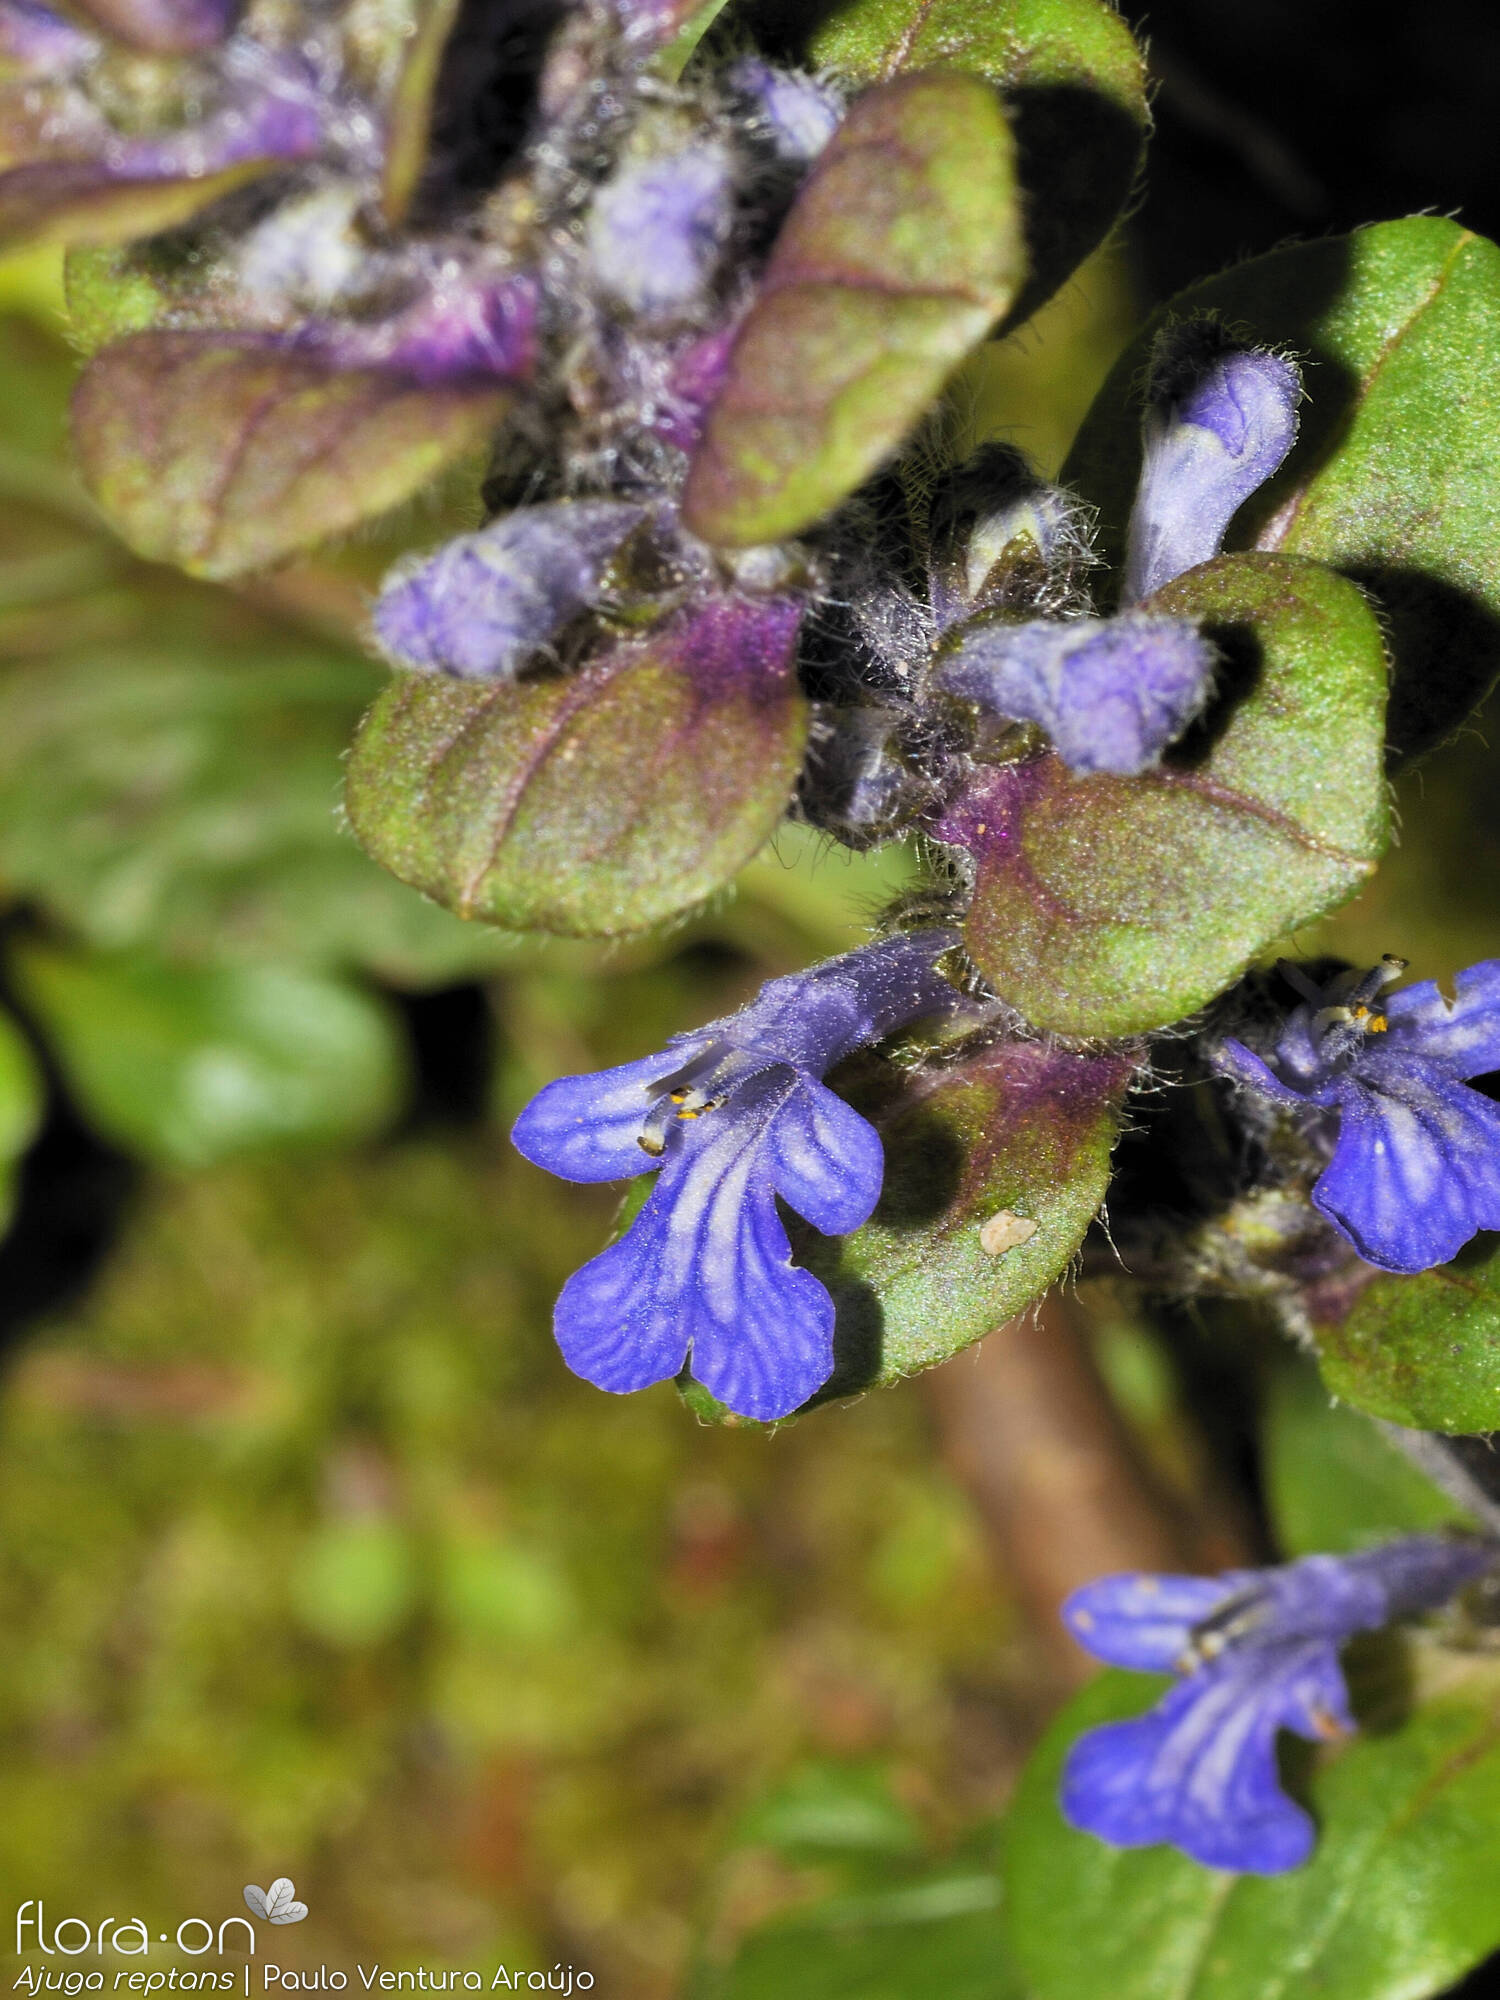 Ajuga reptans - Flor (close-up) | Paulo Ventura Araújo; CC BY-NC 4.0